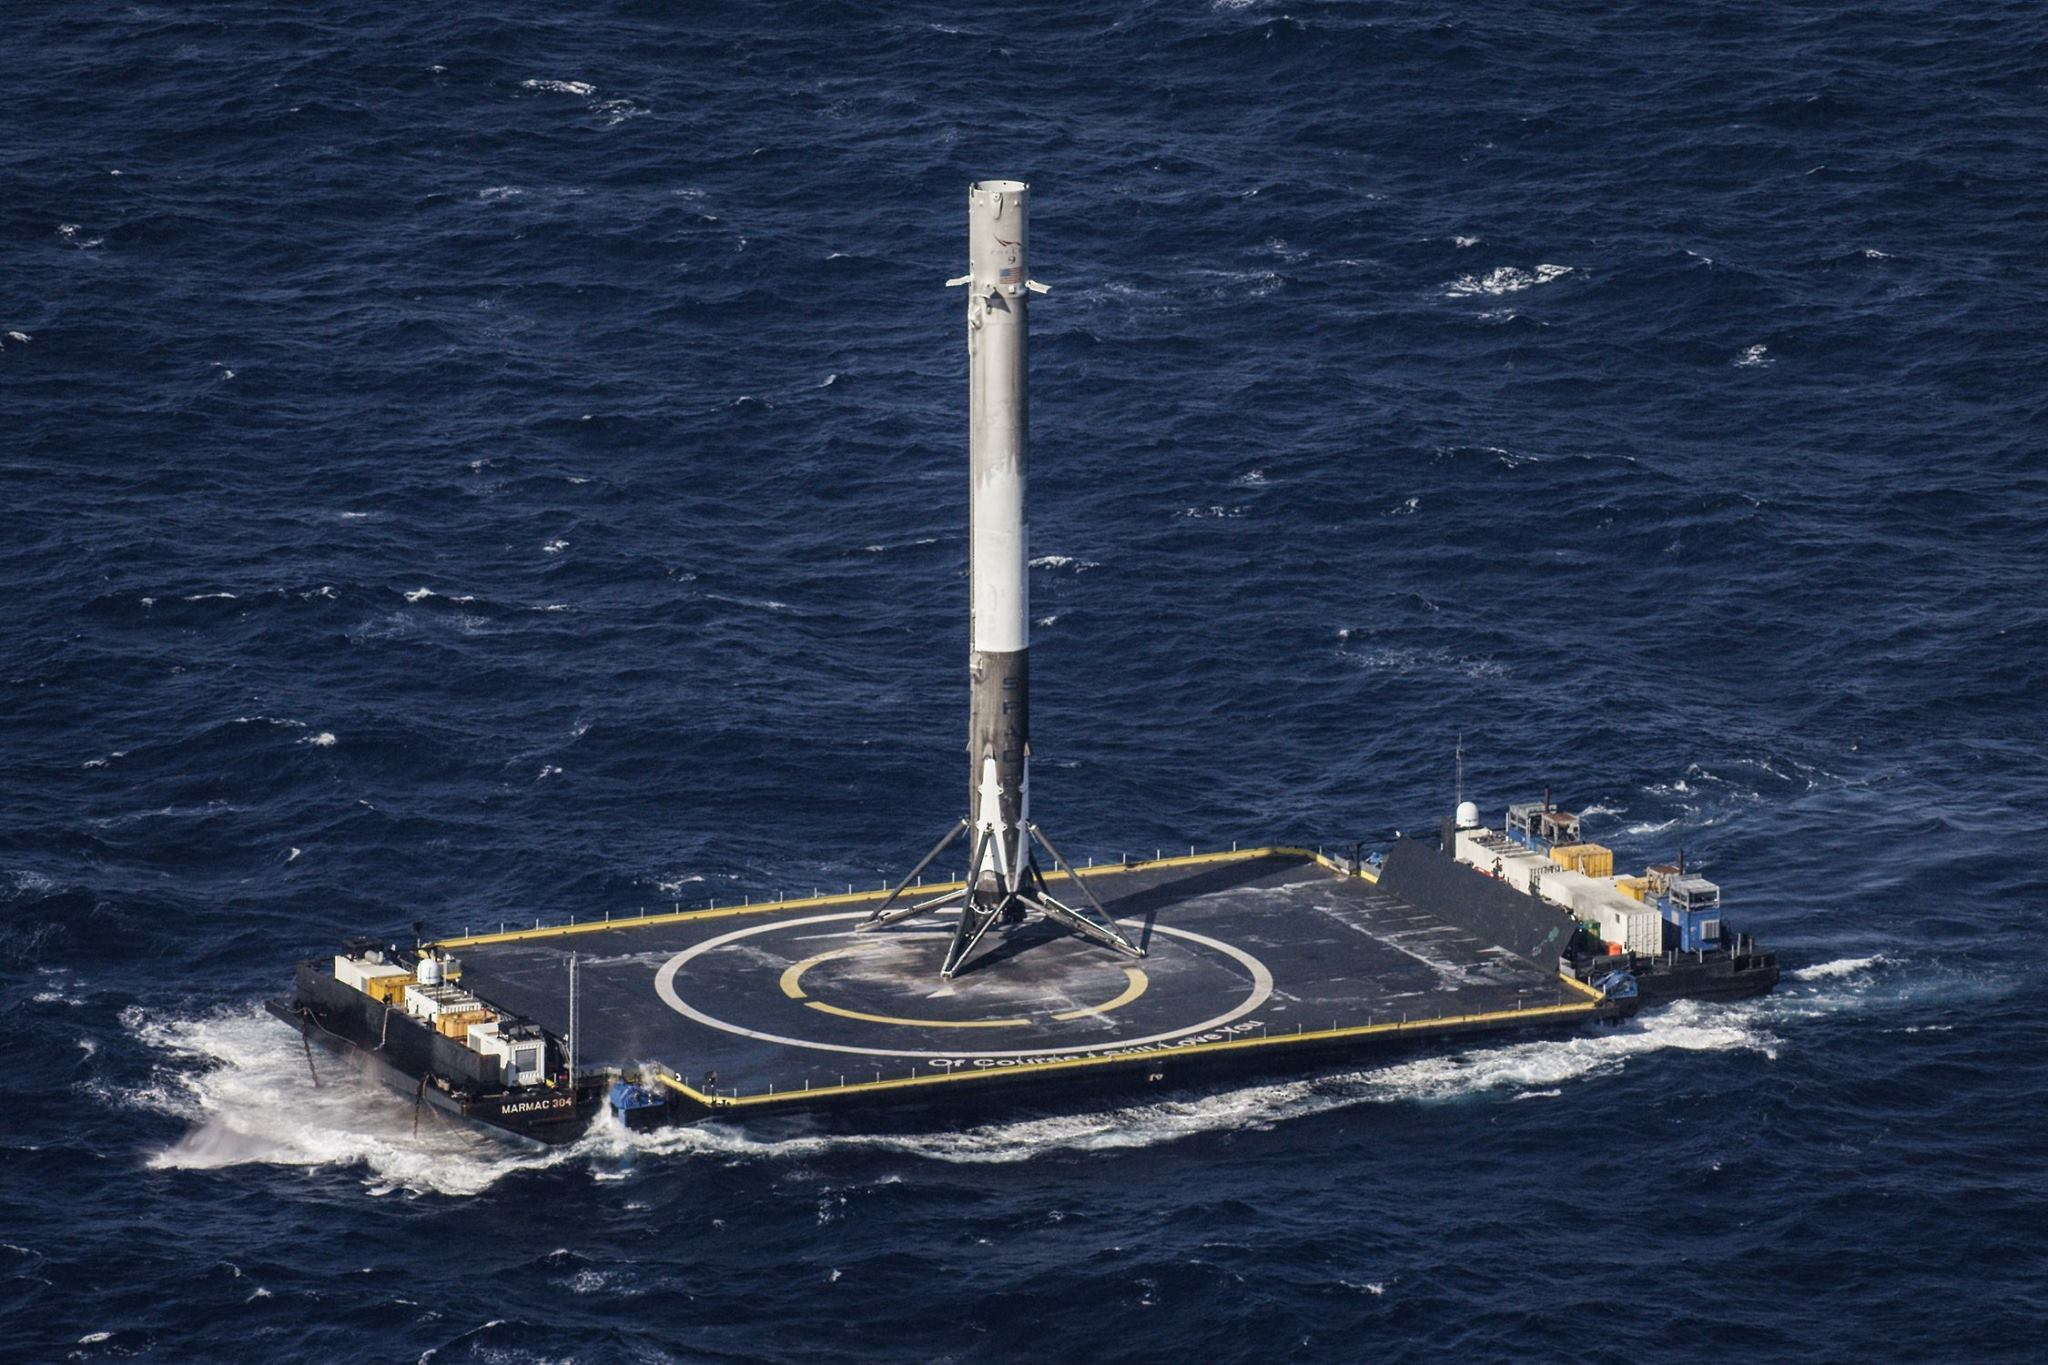 In April, Falcon 9 landed on an autonomous spaceport drone ship.  During this mission, a Dragon cargo spacecraft was delivered to the International Space Station.